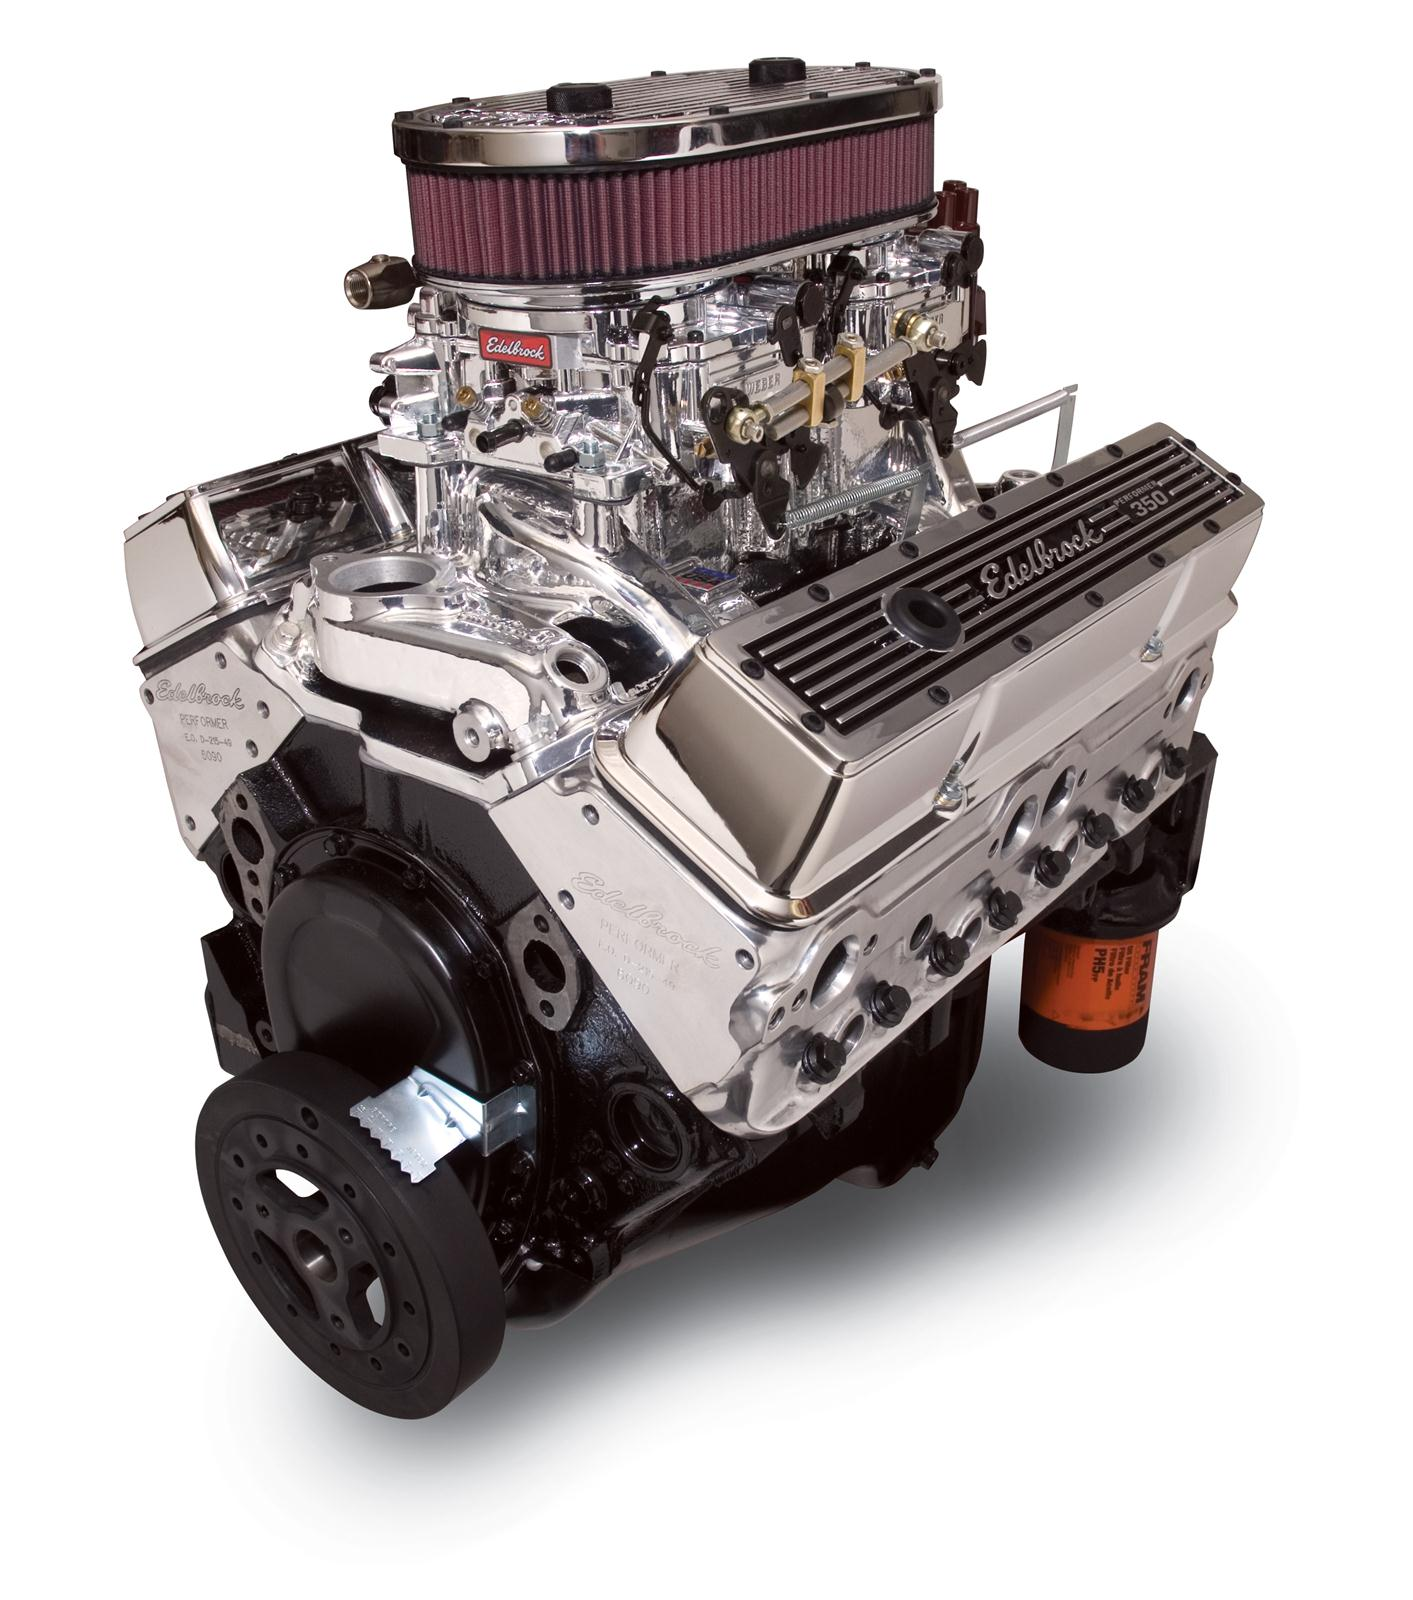 edelbrock performer dual quad 350 c i d 315 hp long block crate 350 engine rebuild edelbrock performer dual quad 350 c i d 315 hp long block crate engines 45014 free shipping on orders over $99 at summit racing